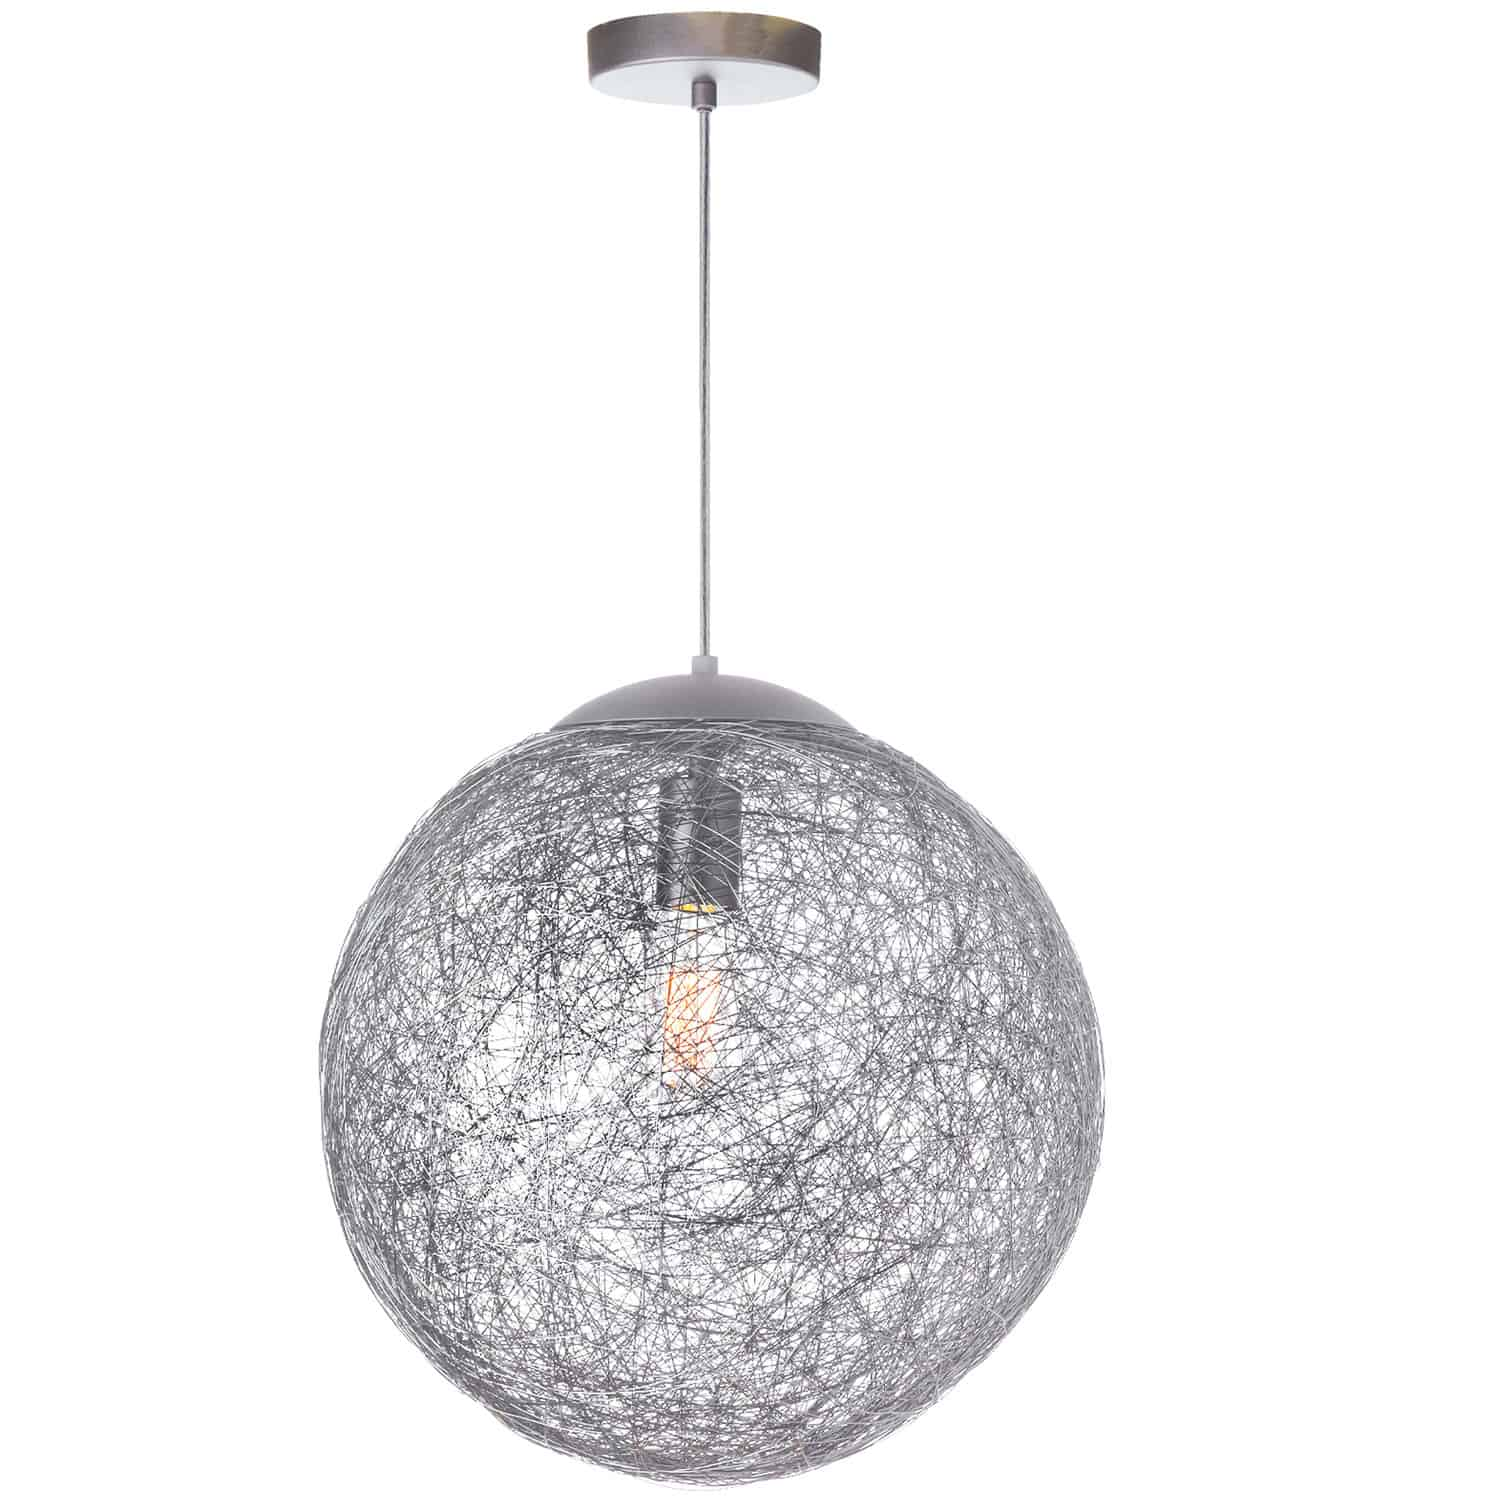 1 Light Incandescent Pendant, Aluminum